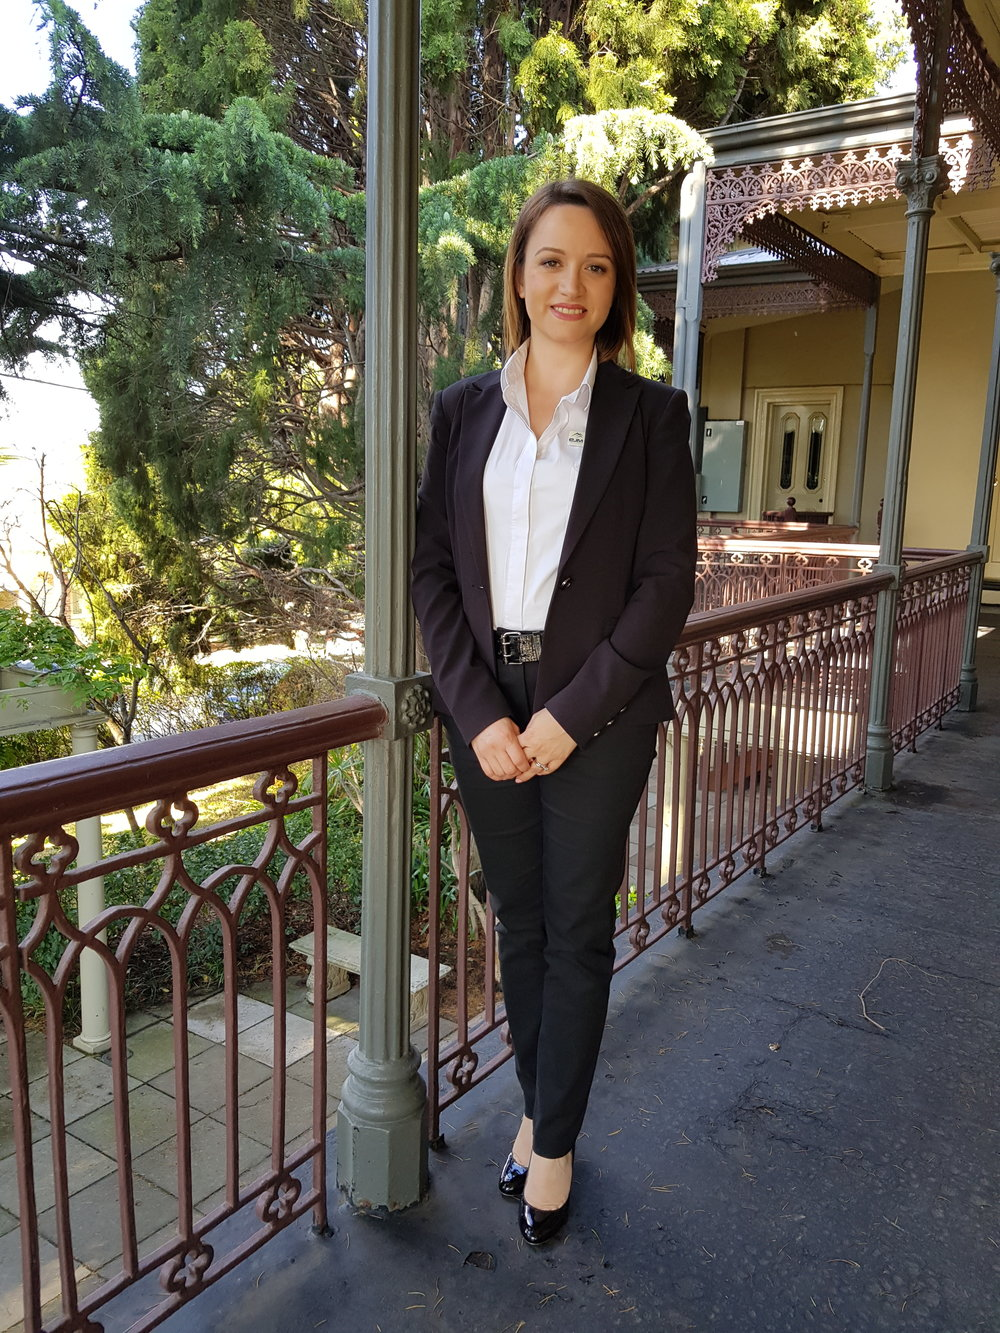 Jonida Lulo - Services Manager